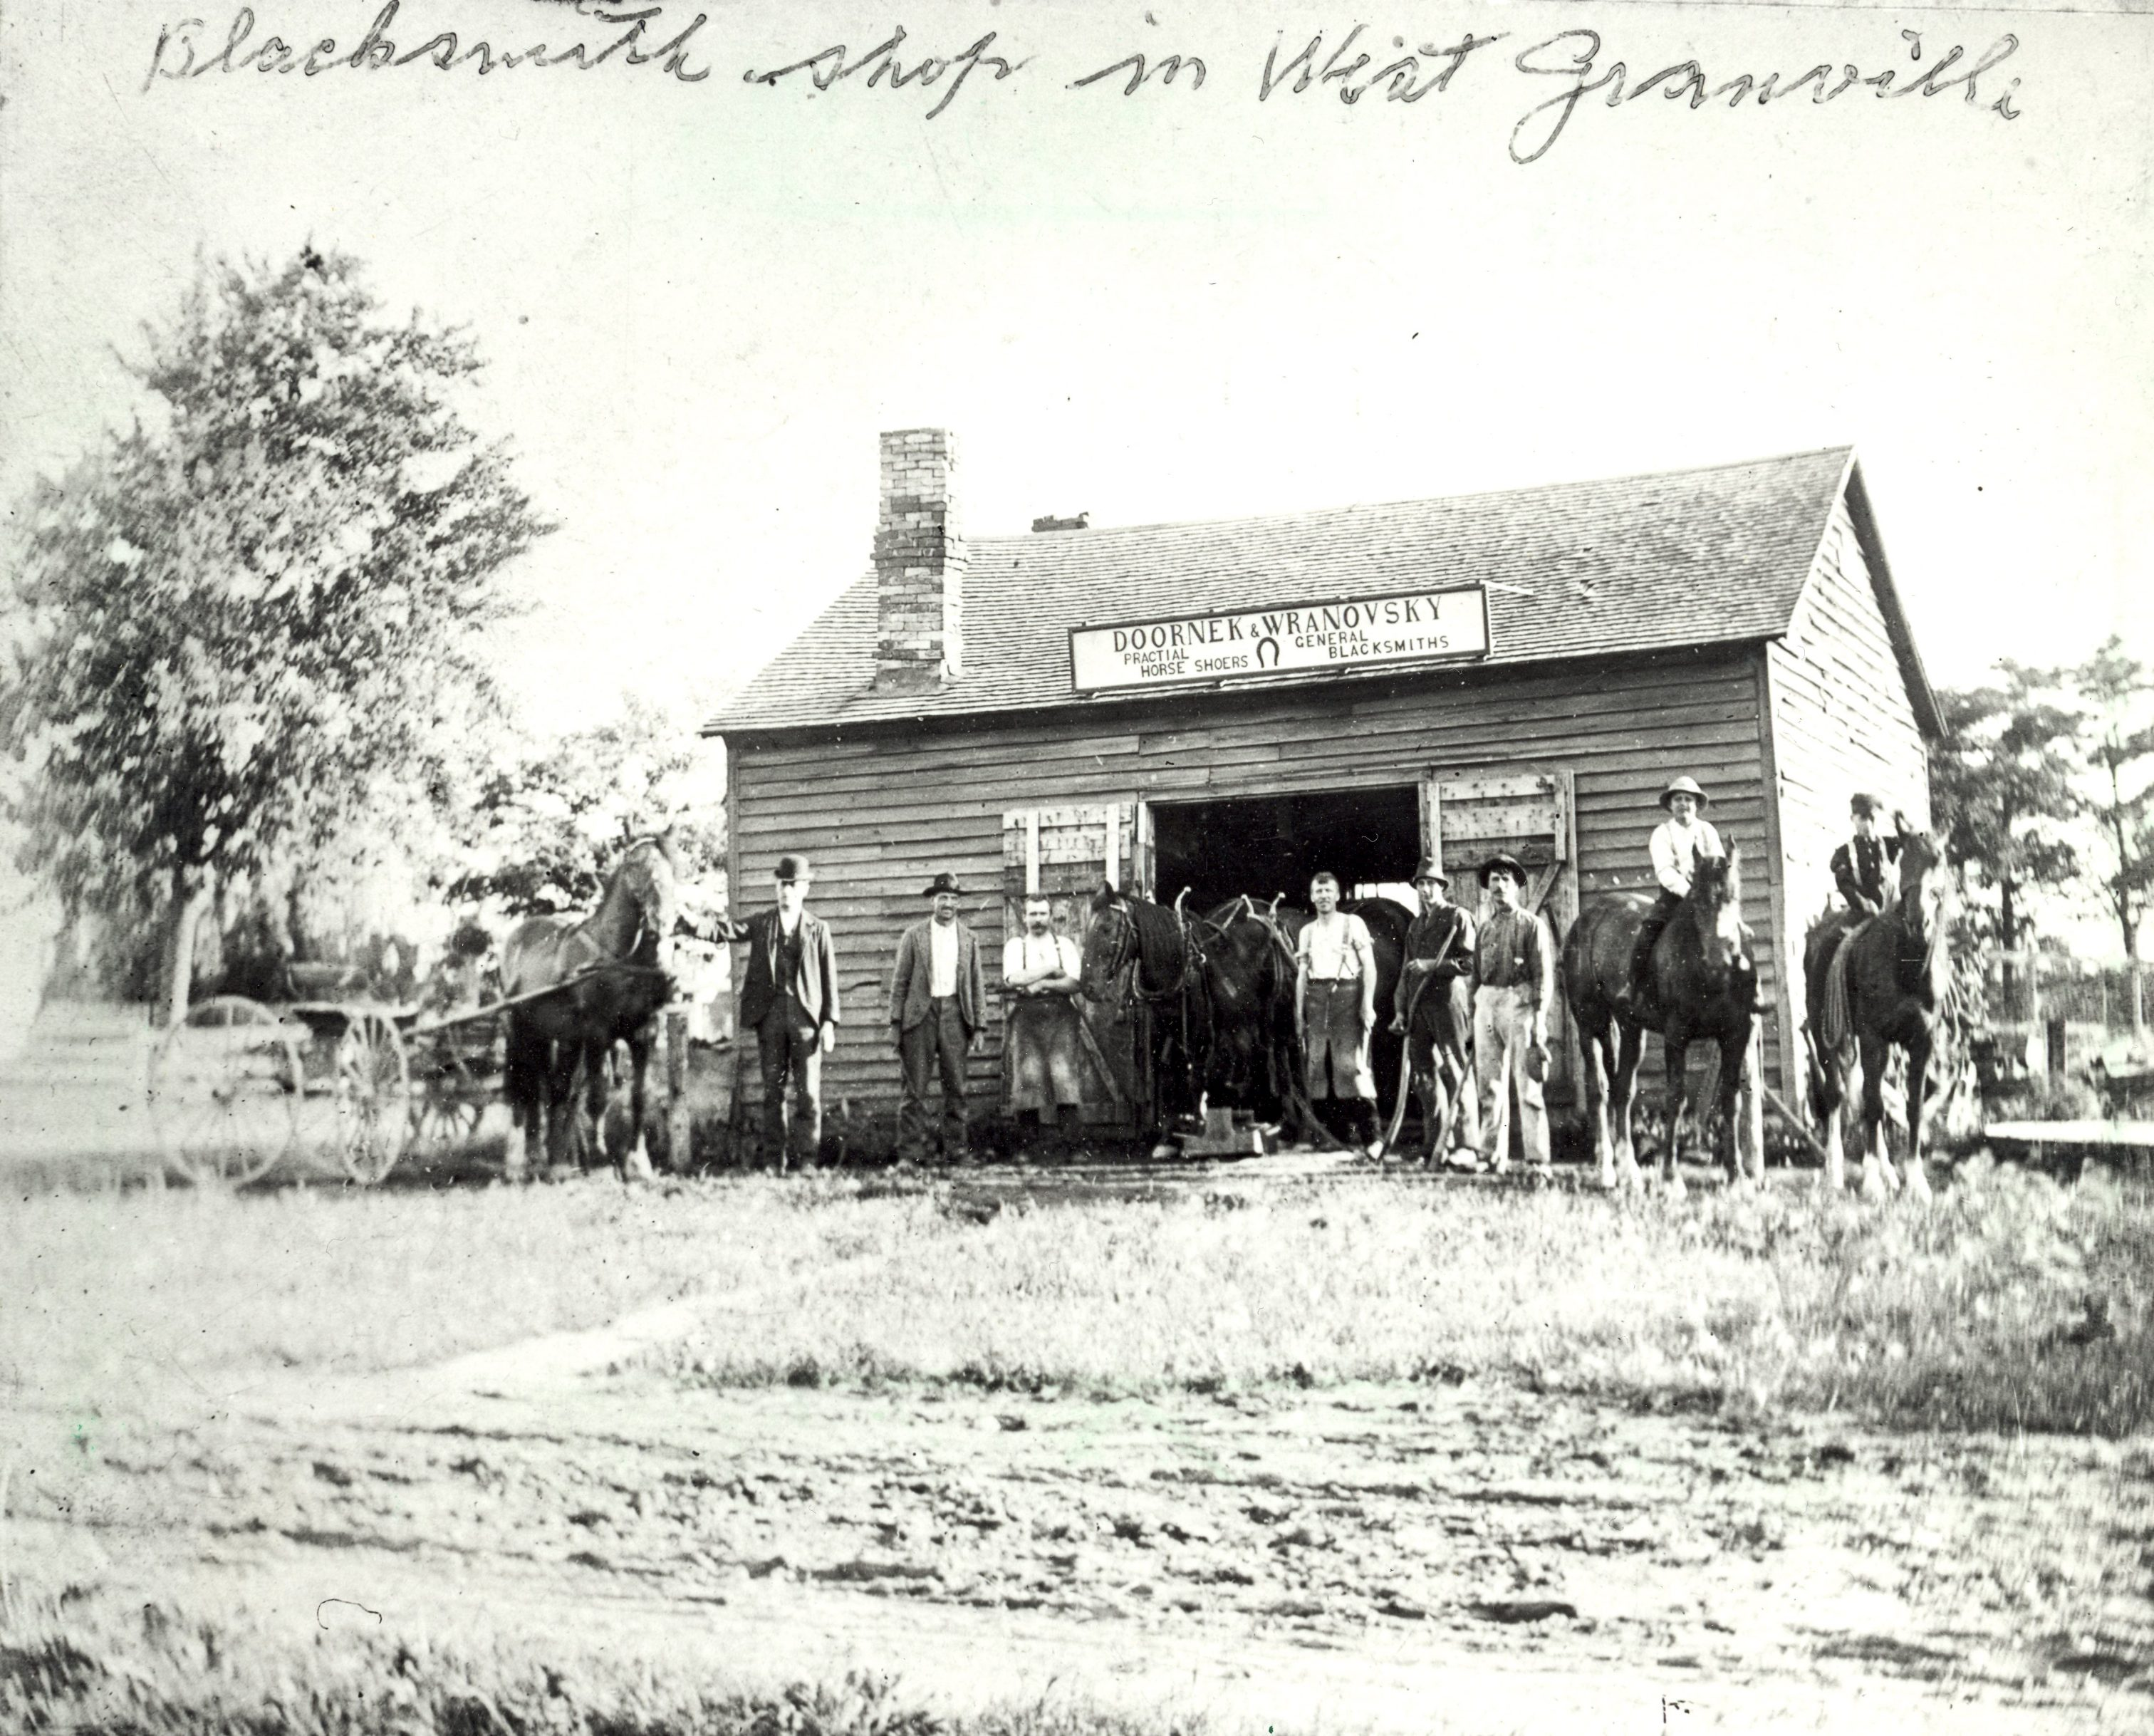 An 1898 photograph of the Doornek & Wranovsky Blacksmith shop in Granville.